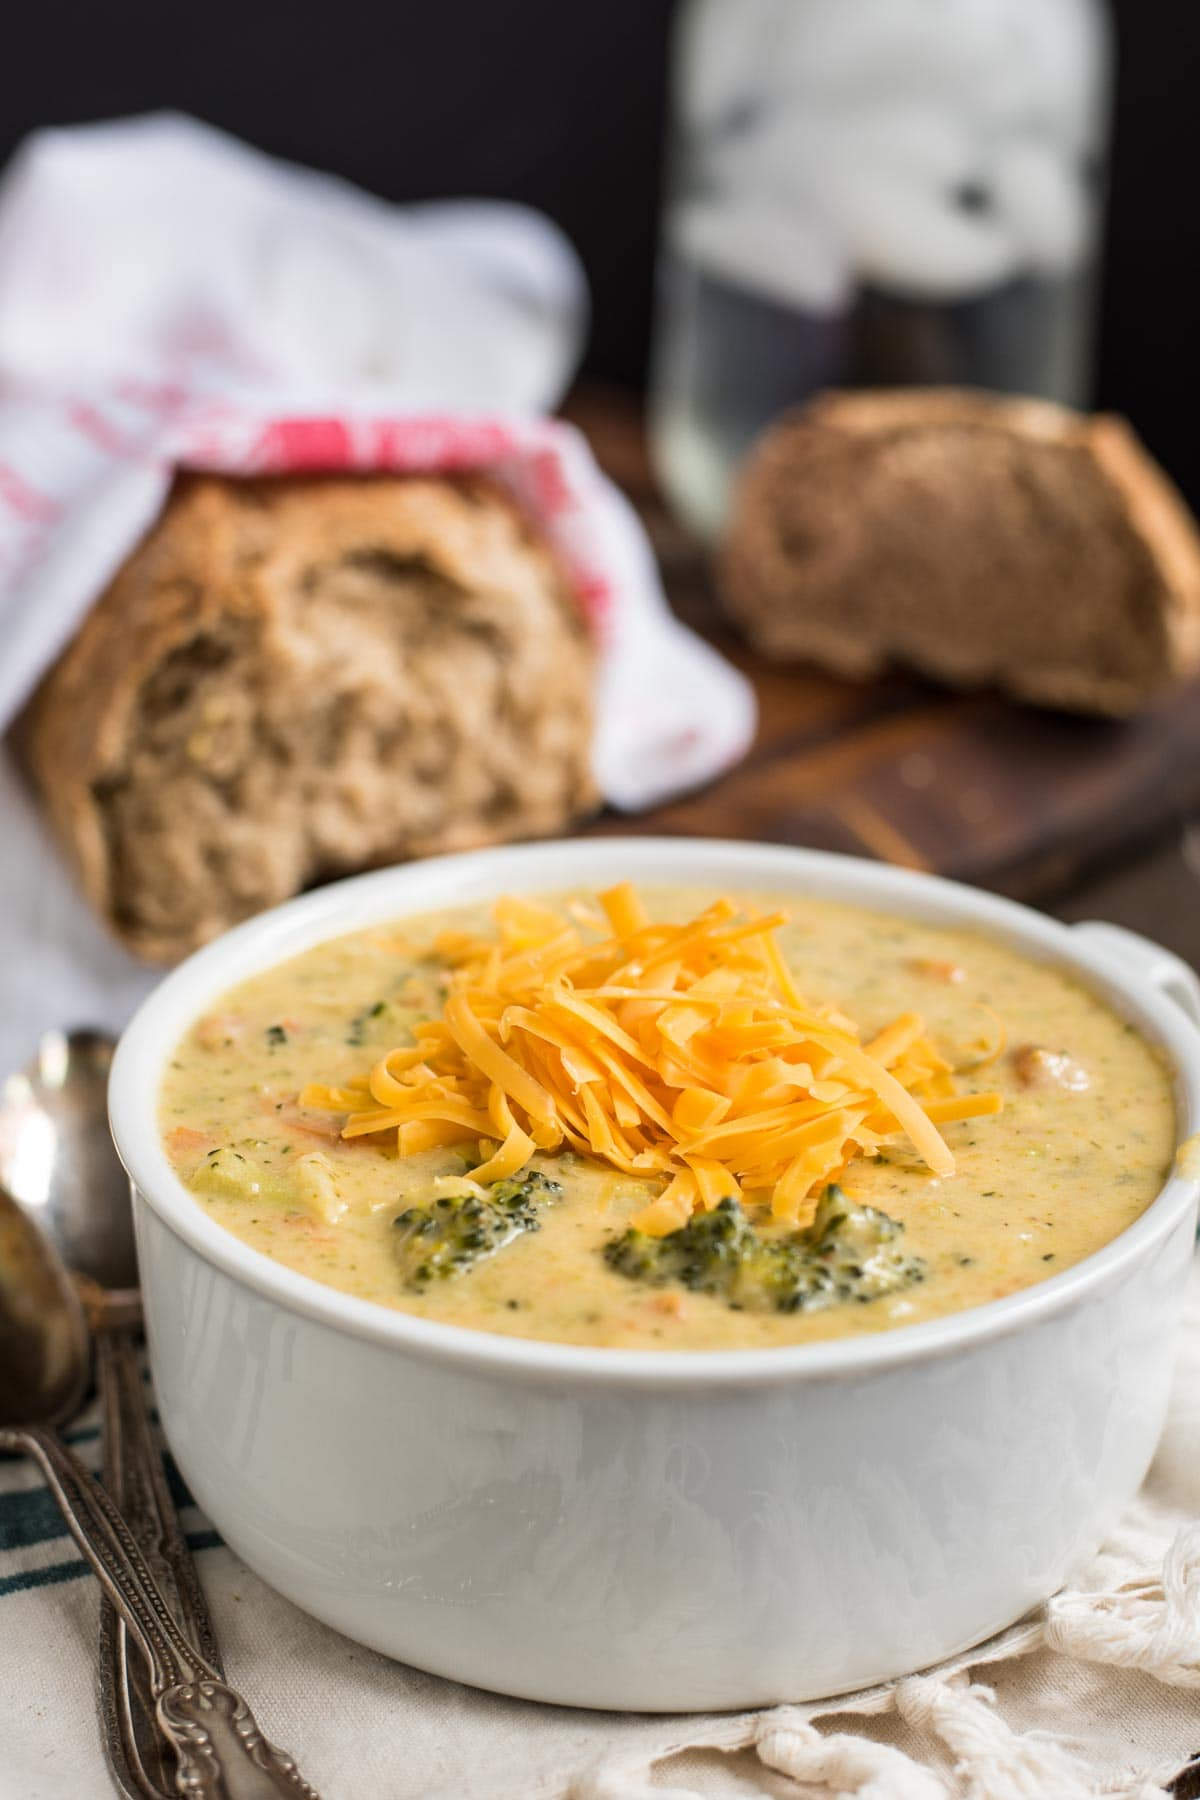 This classic Broccoli Cheddar Soup is creamy, cheesy, and the perfect amount of richness.